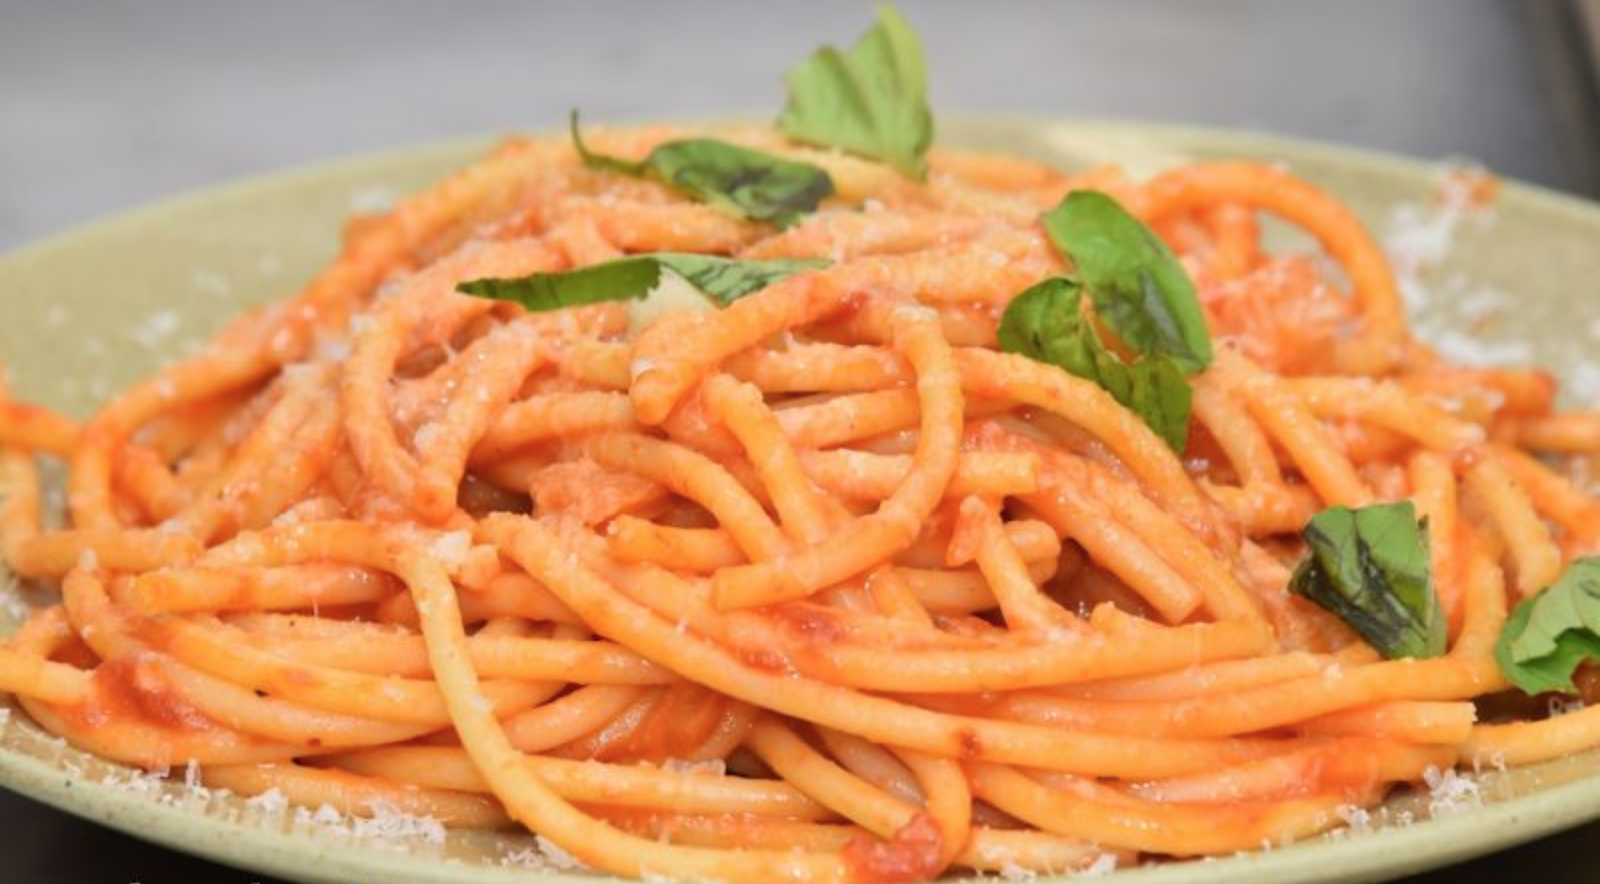 Bucatini pasta seasoned with flavorful sauce from organic tomatoes picked by CultureHorde members.